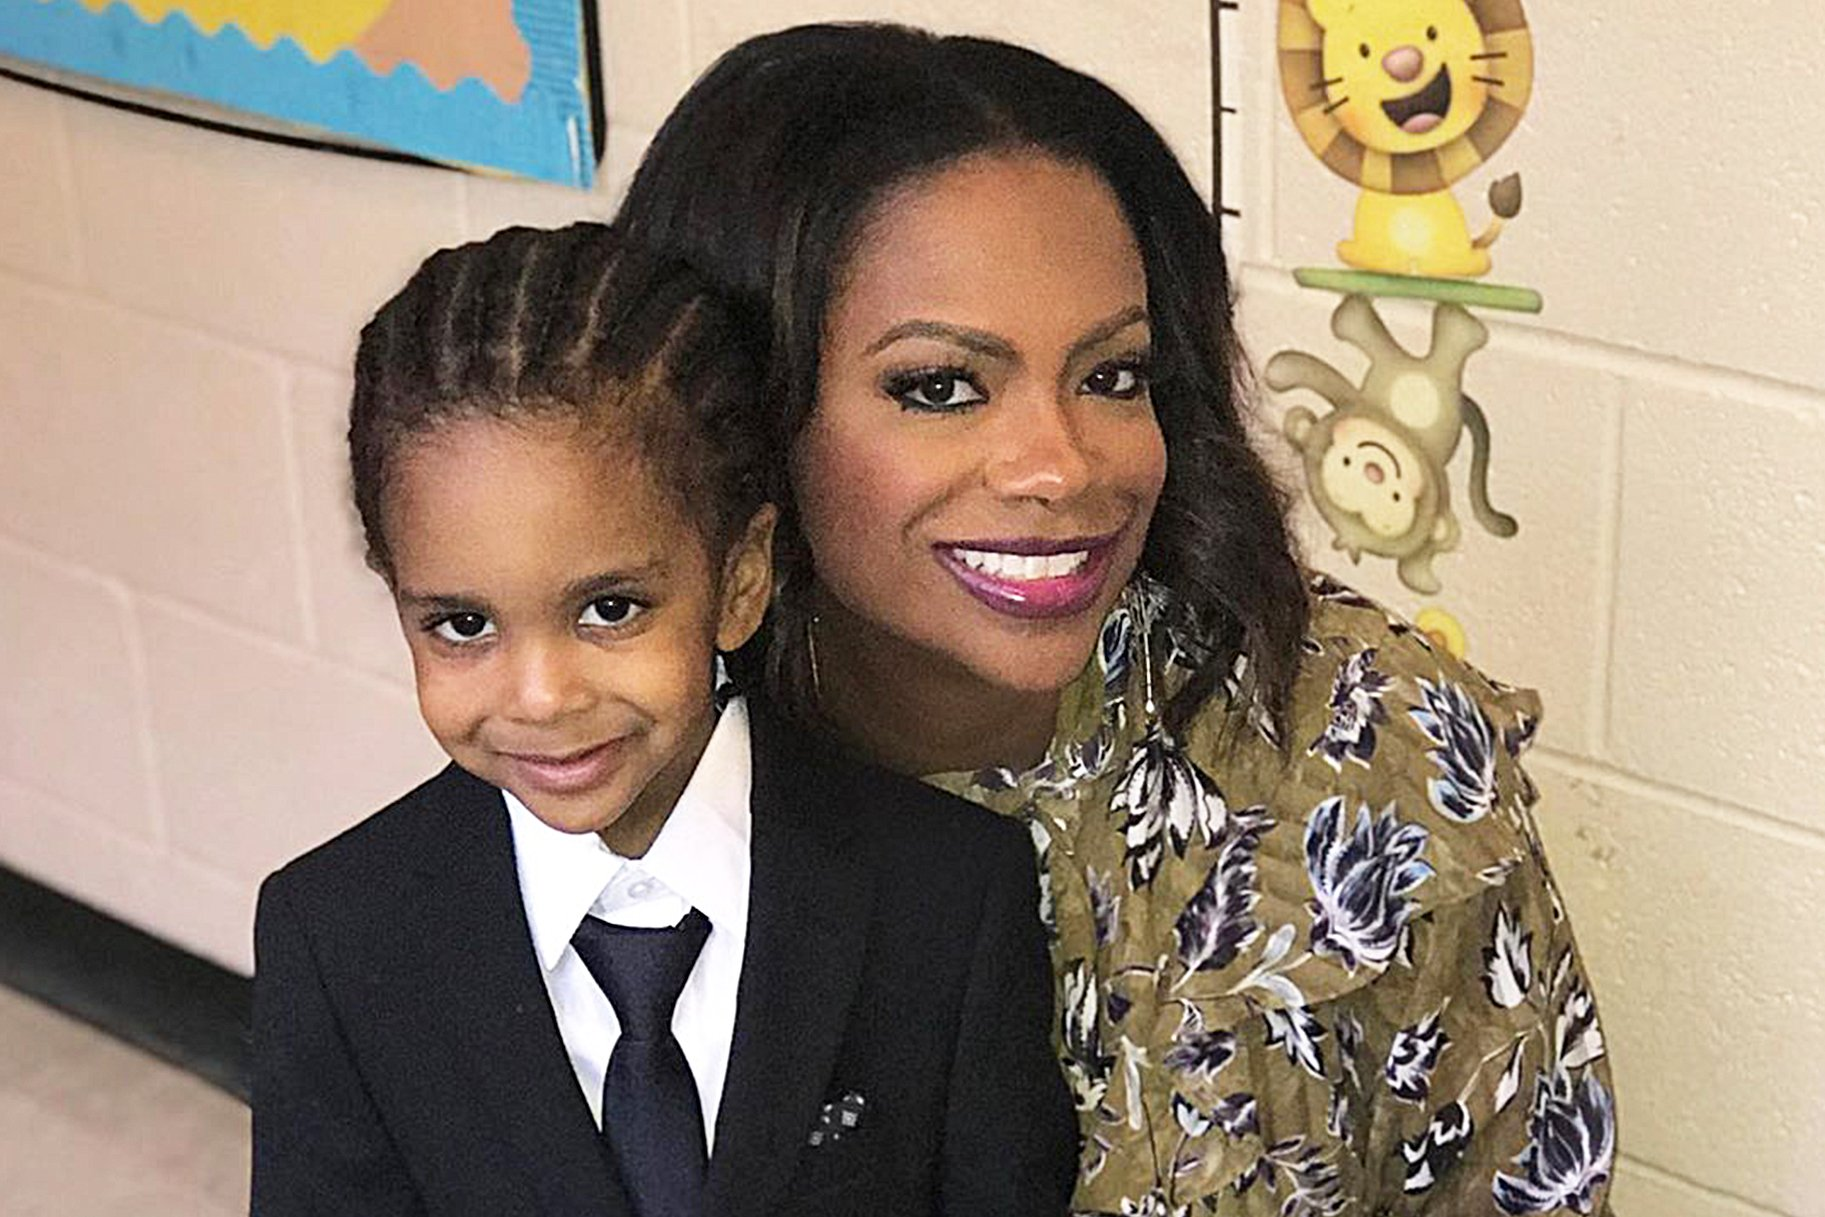 Kandi Burruss Invites Fans To Subscribe To Her Son Ace Wells Tucker's YouTube Account - He's Having A Giveaway!